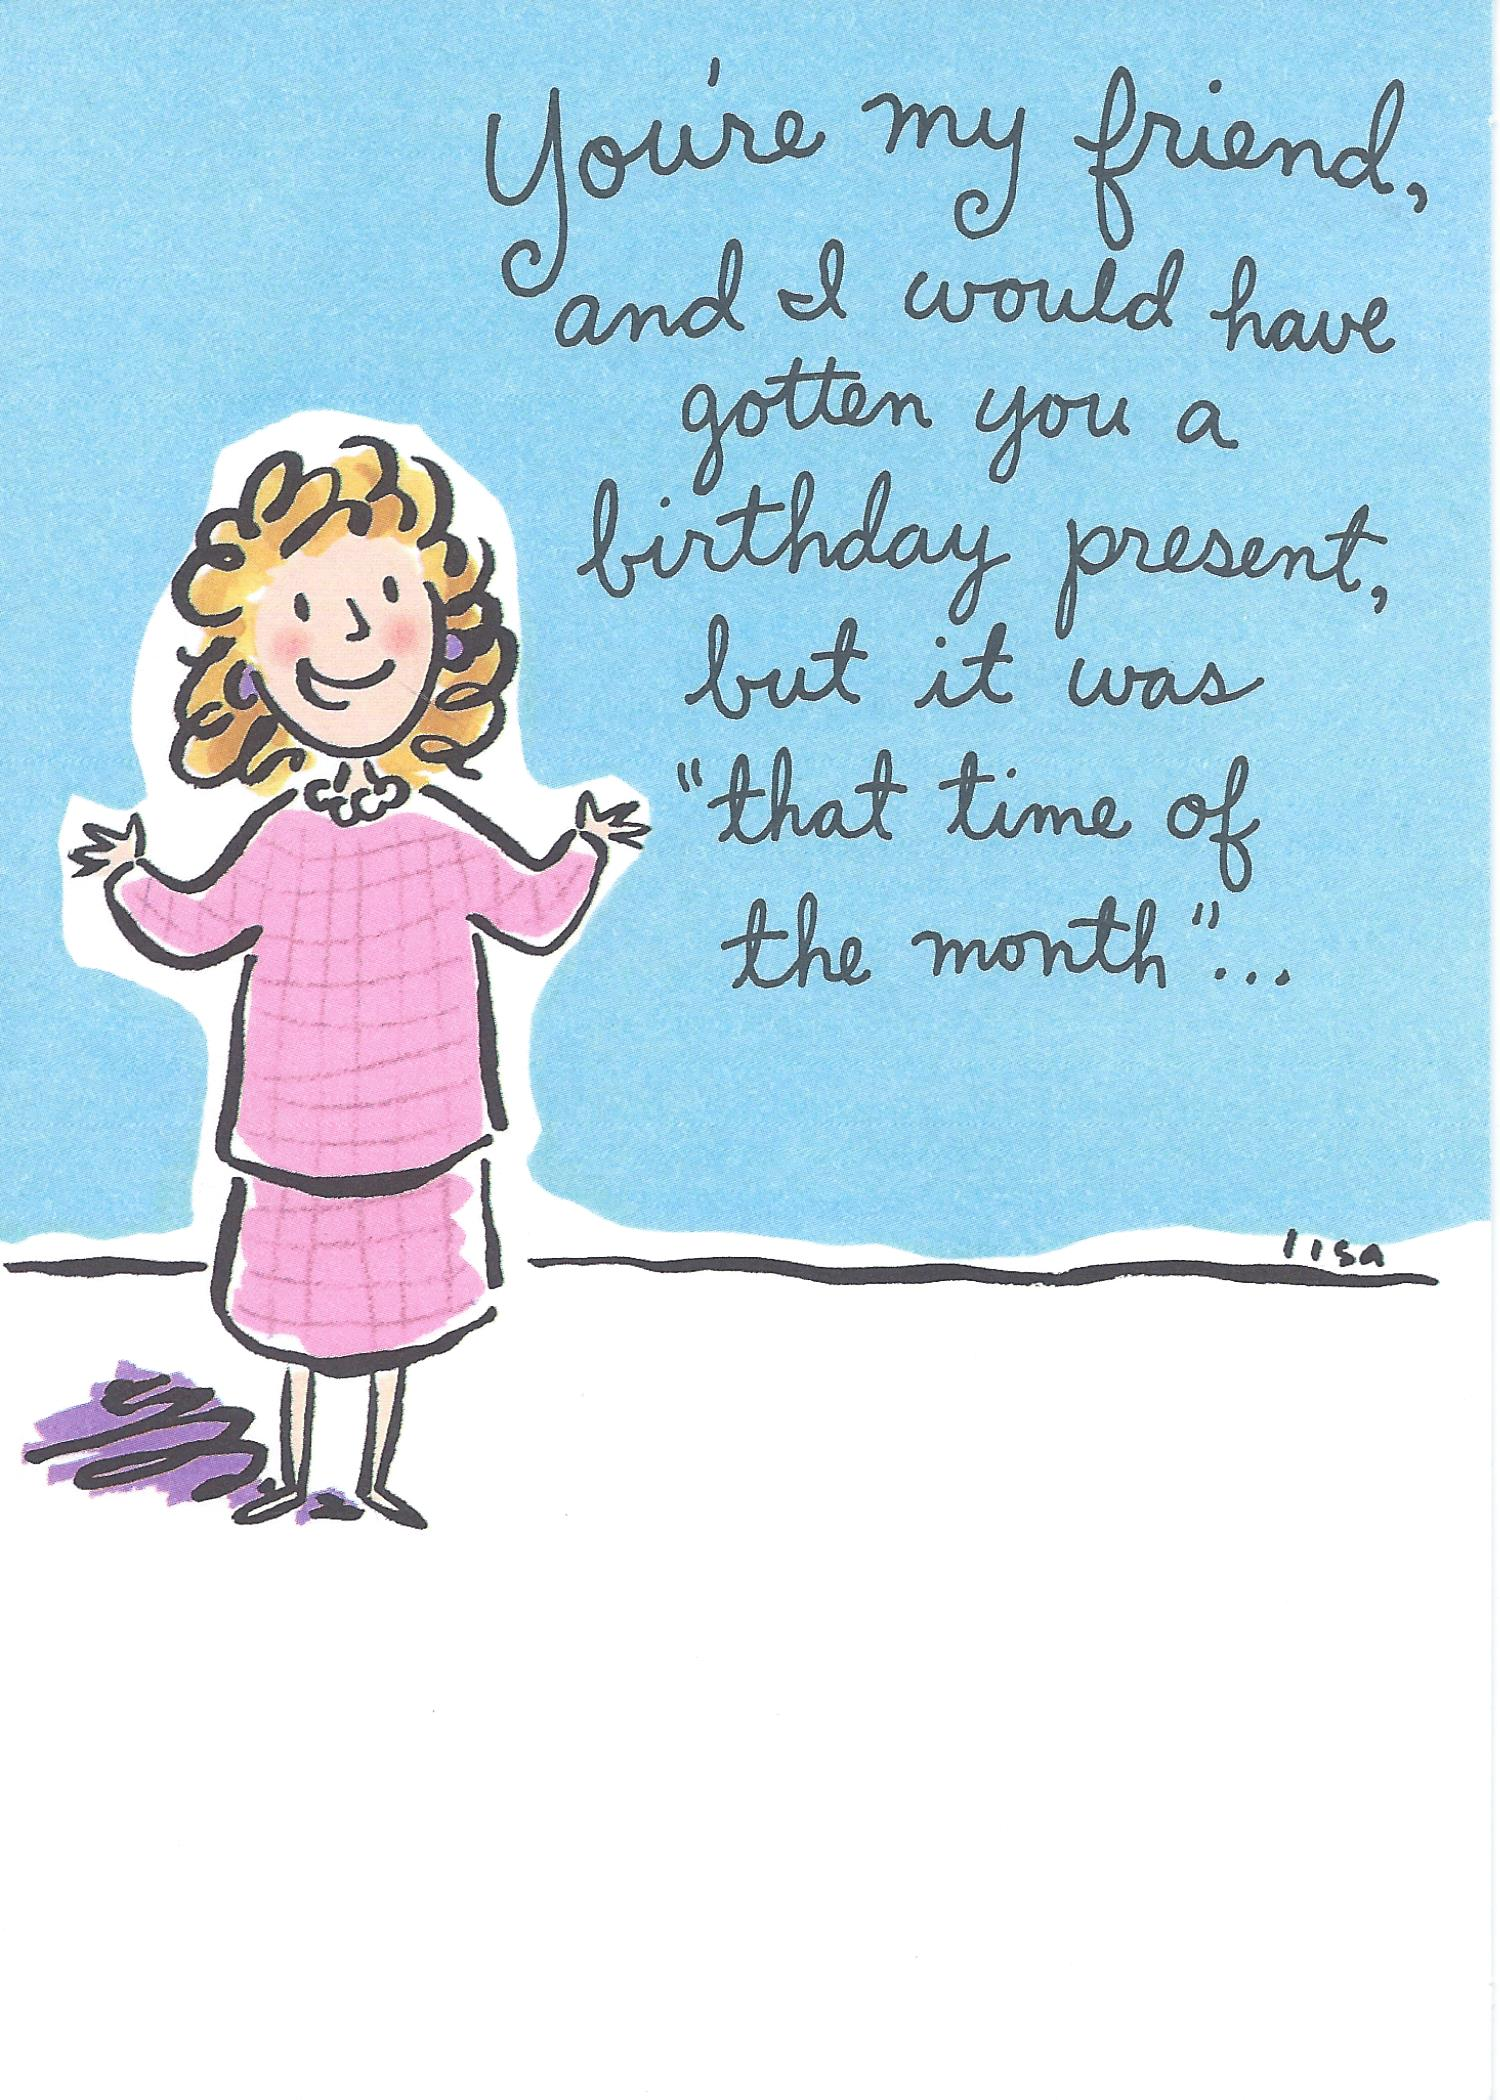 """You're my friend, and I would have gotten you a birthday present, but it was """"that time of the month..."""""""